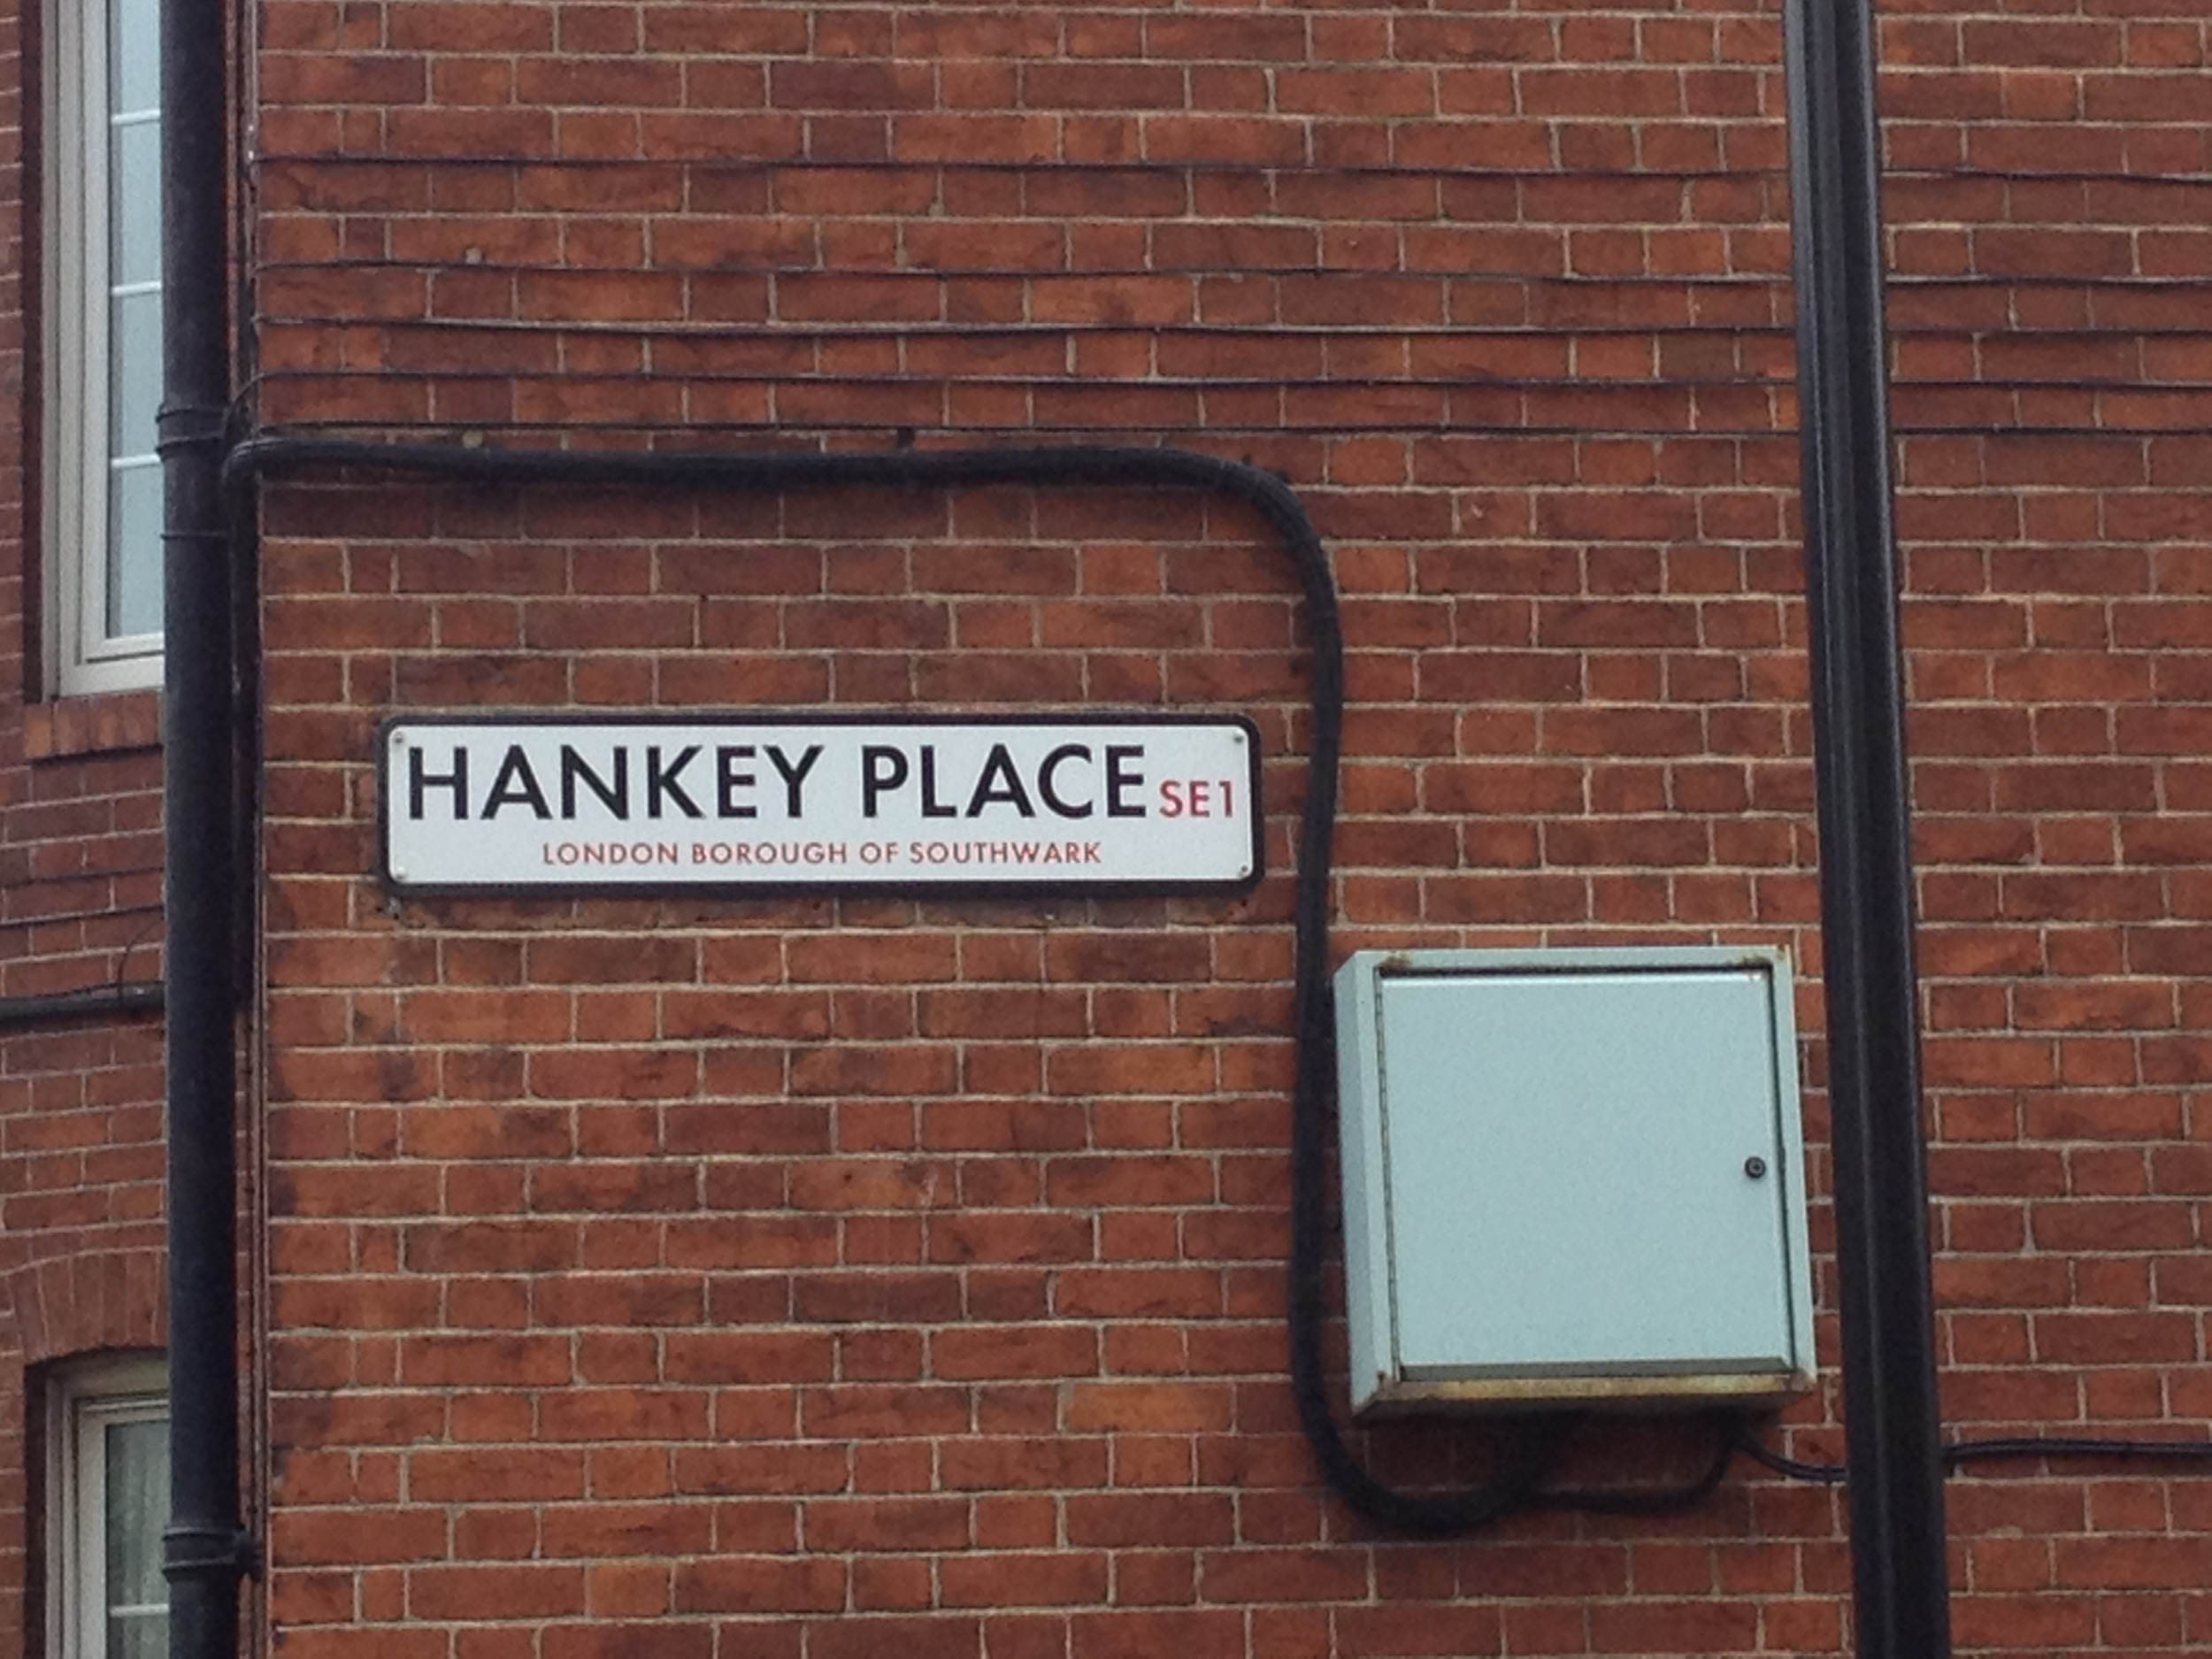 Is this where handkerchiefs originated? Should it be re-named Kleenex Place? Or maybe Pankey Place is around the corner.